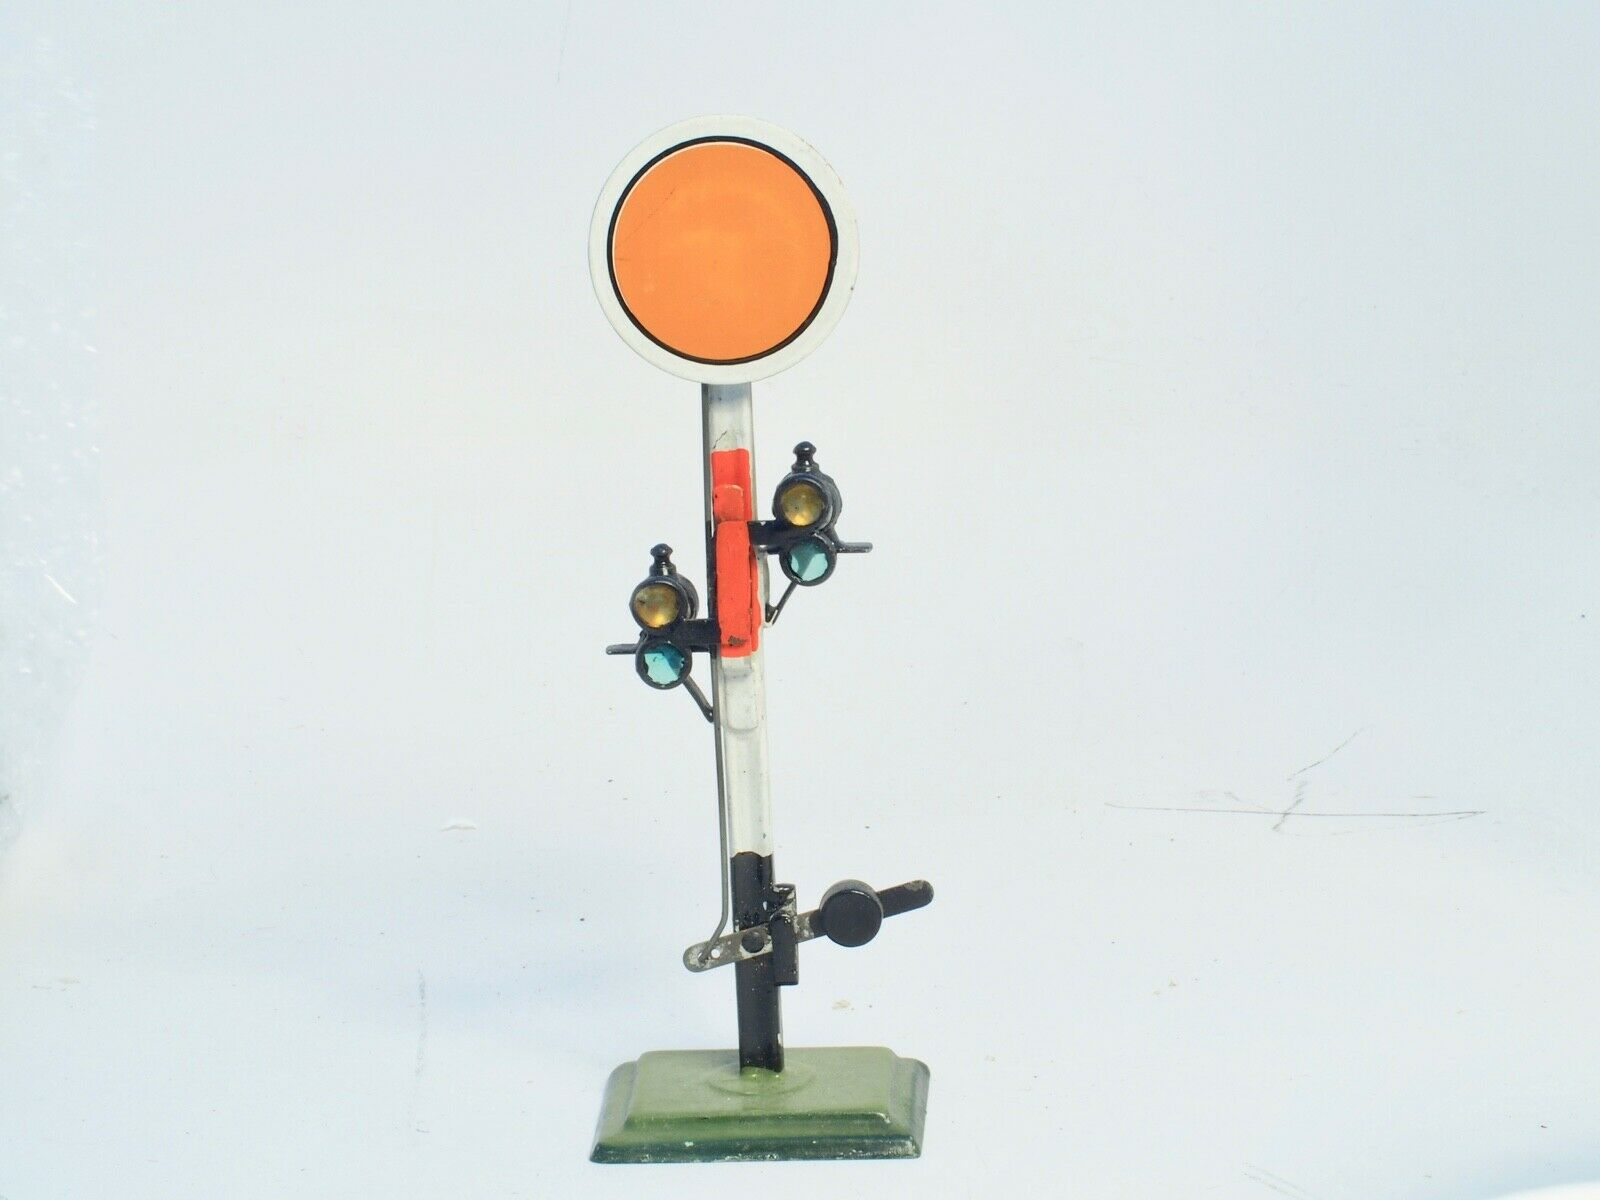 Marklin Gauge I, Scale 1 32 Antique Distant Signal 178 mm tall